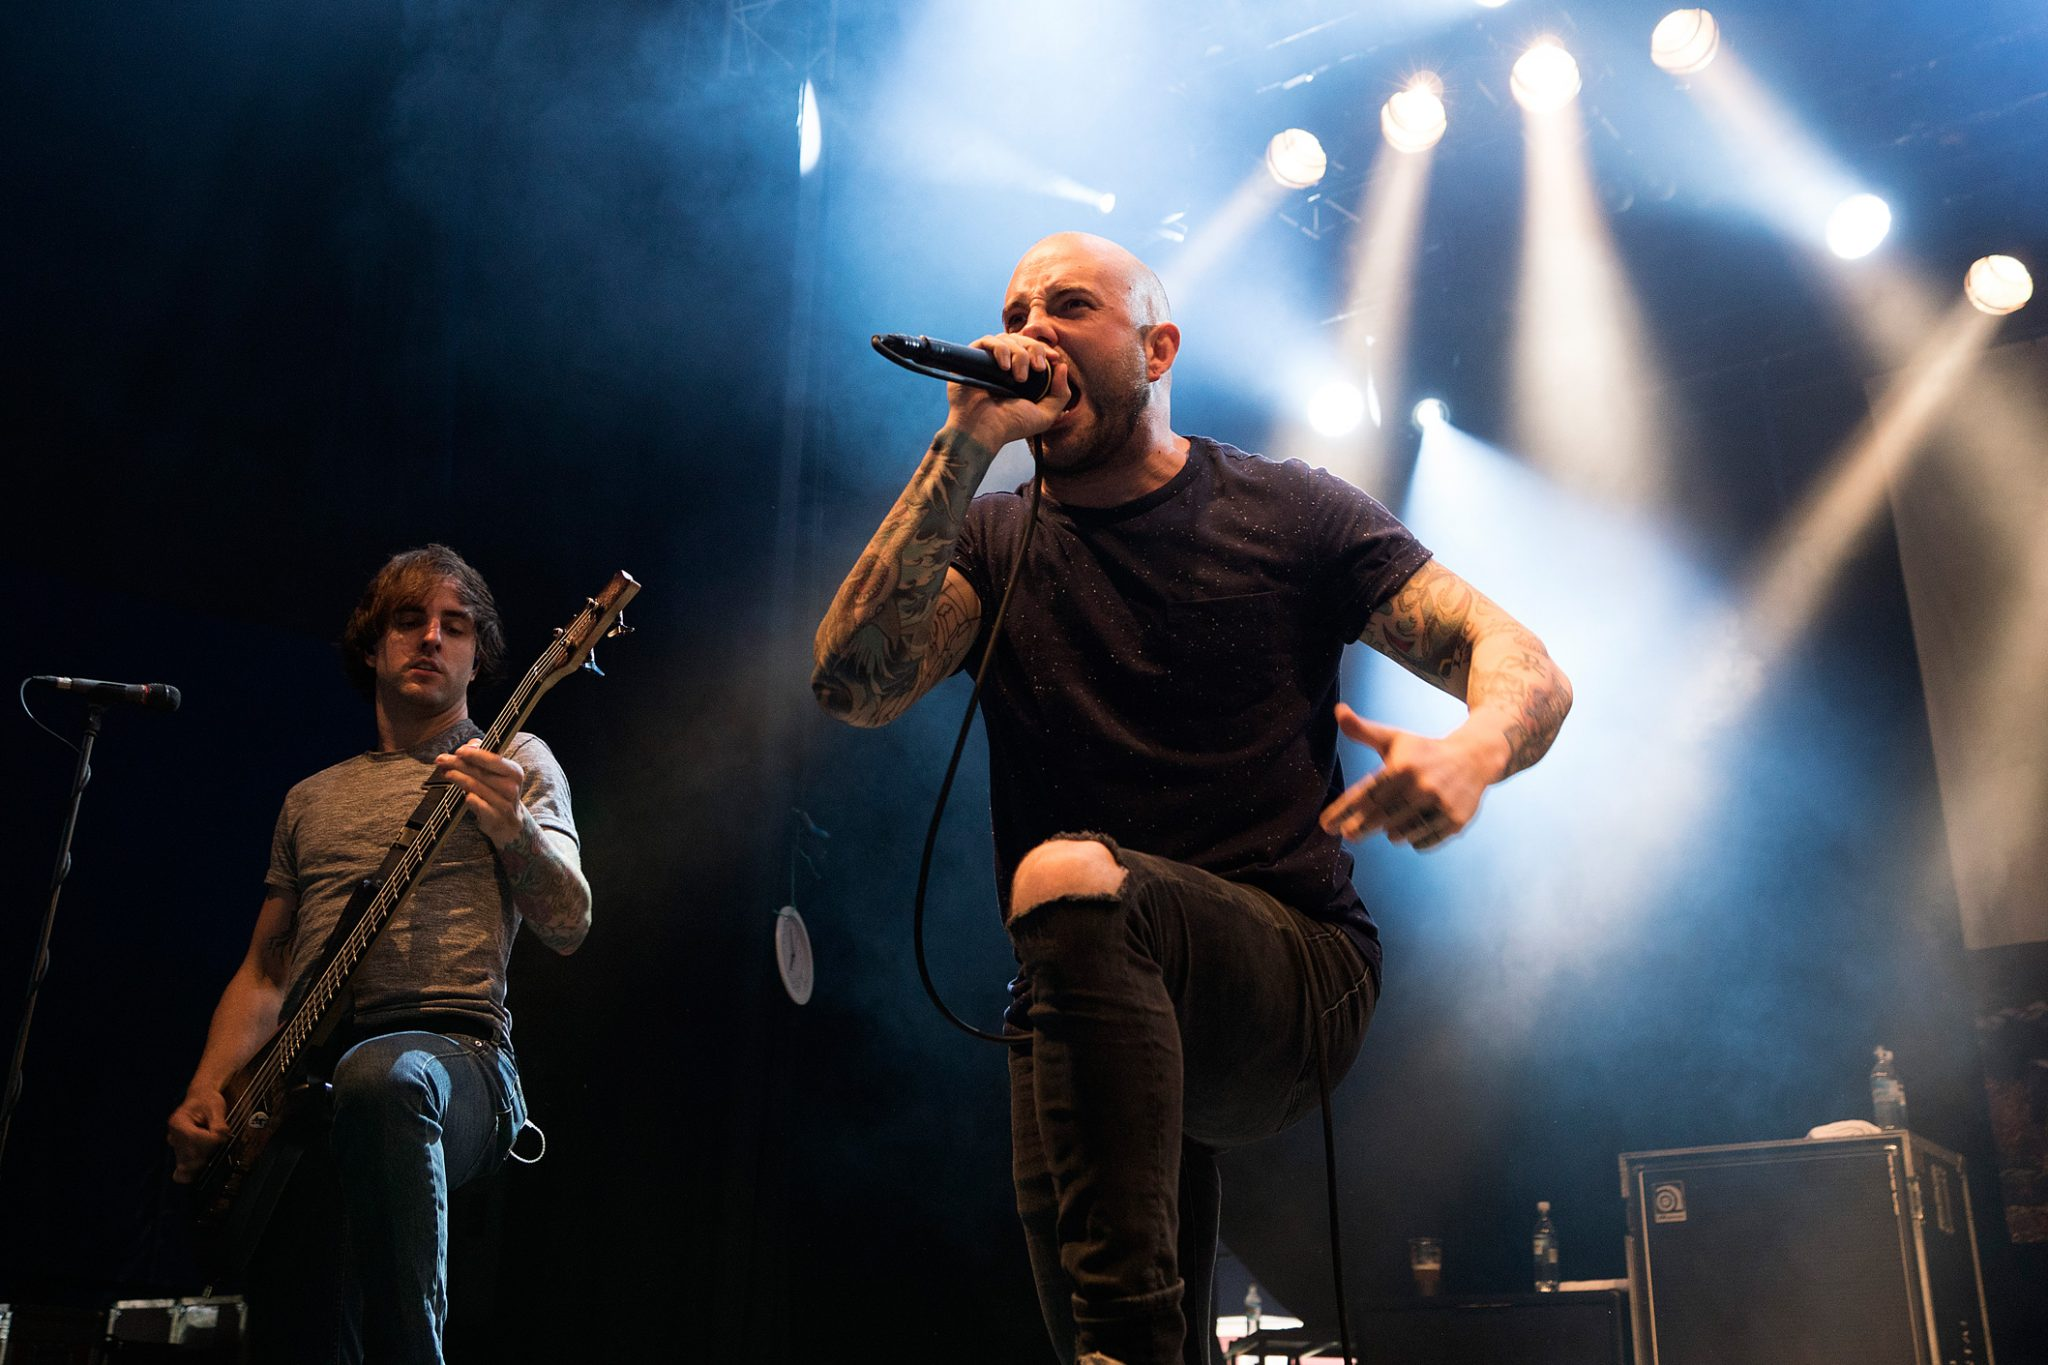 Dustin Davidson & Jake Luhrs, August Burns Red